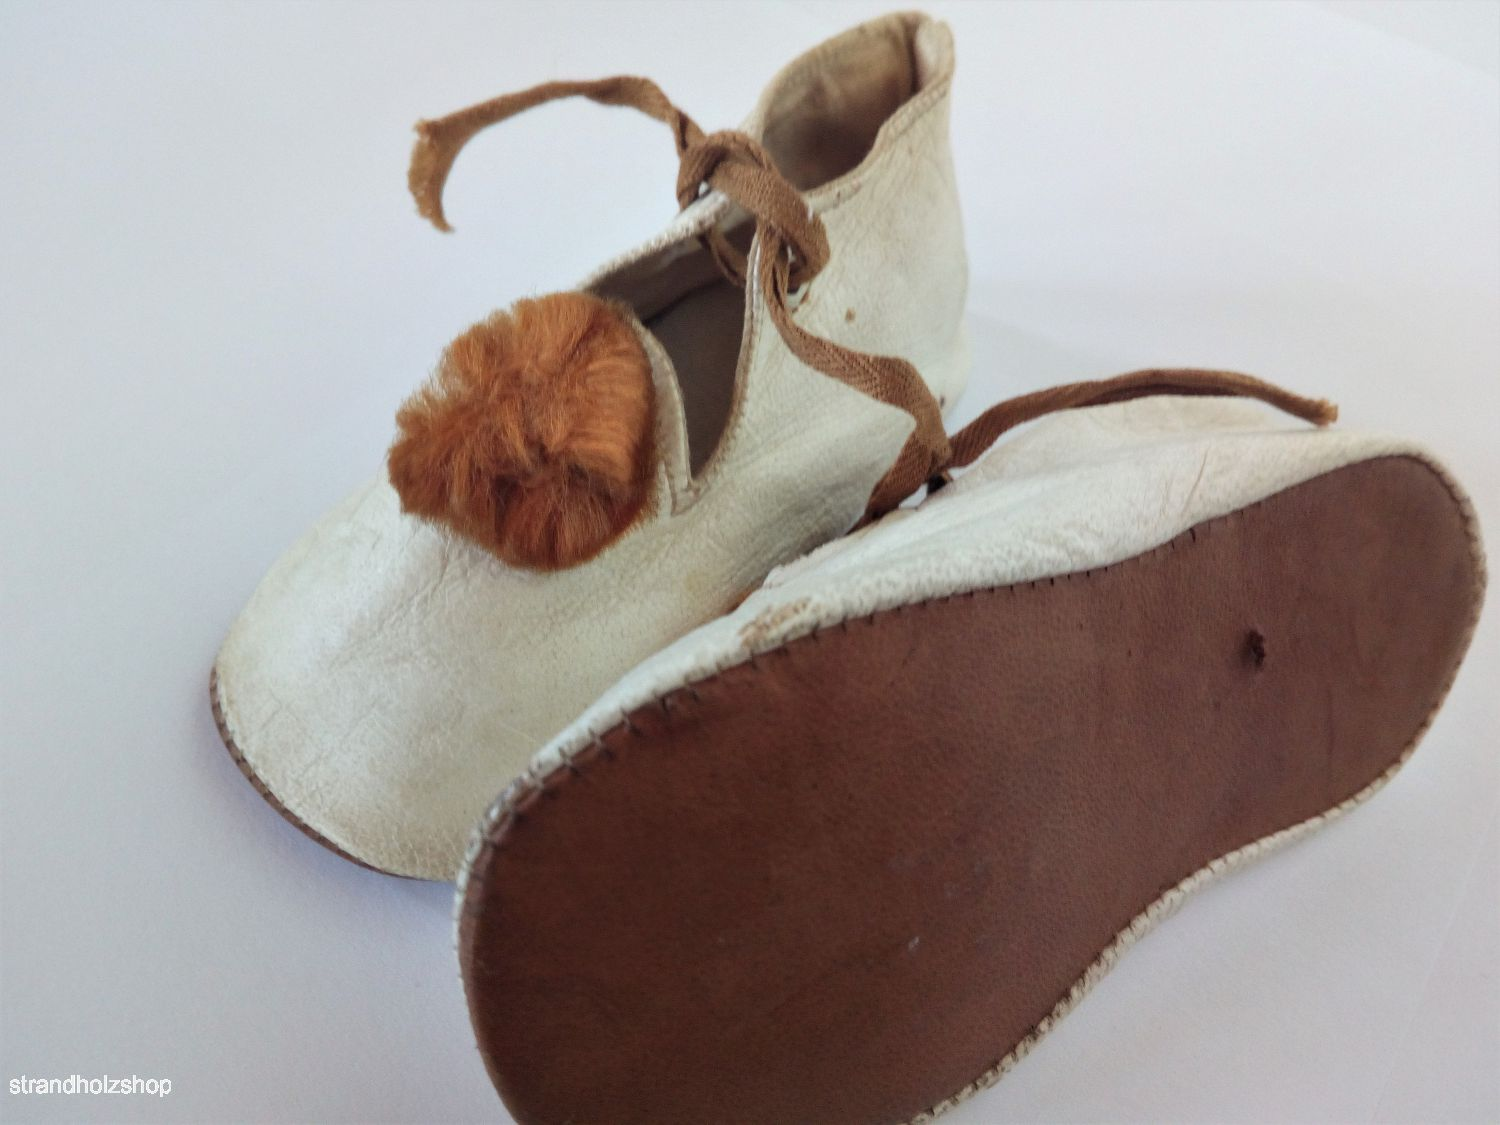 Children's Shoes Baby Vintage Leather Decoration